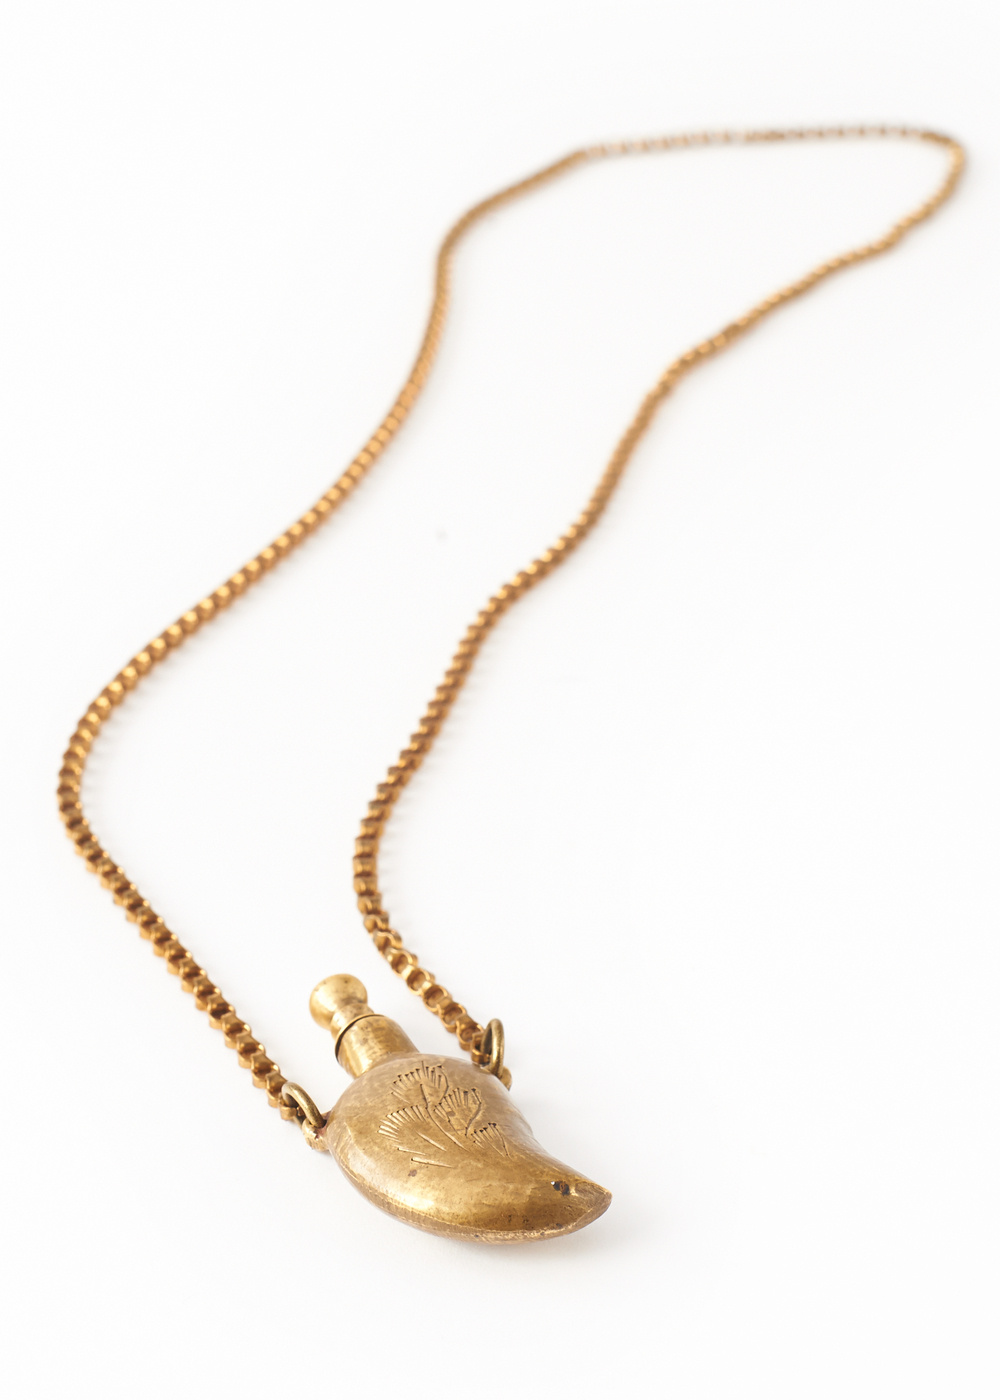 Vintage Flask Necklace